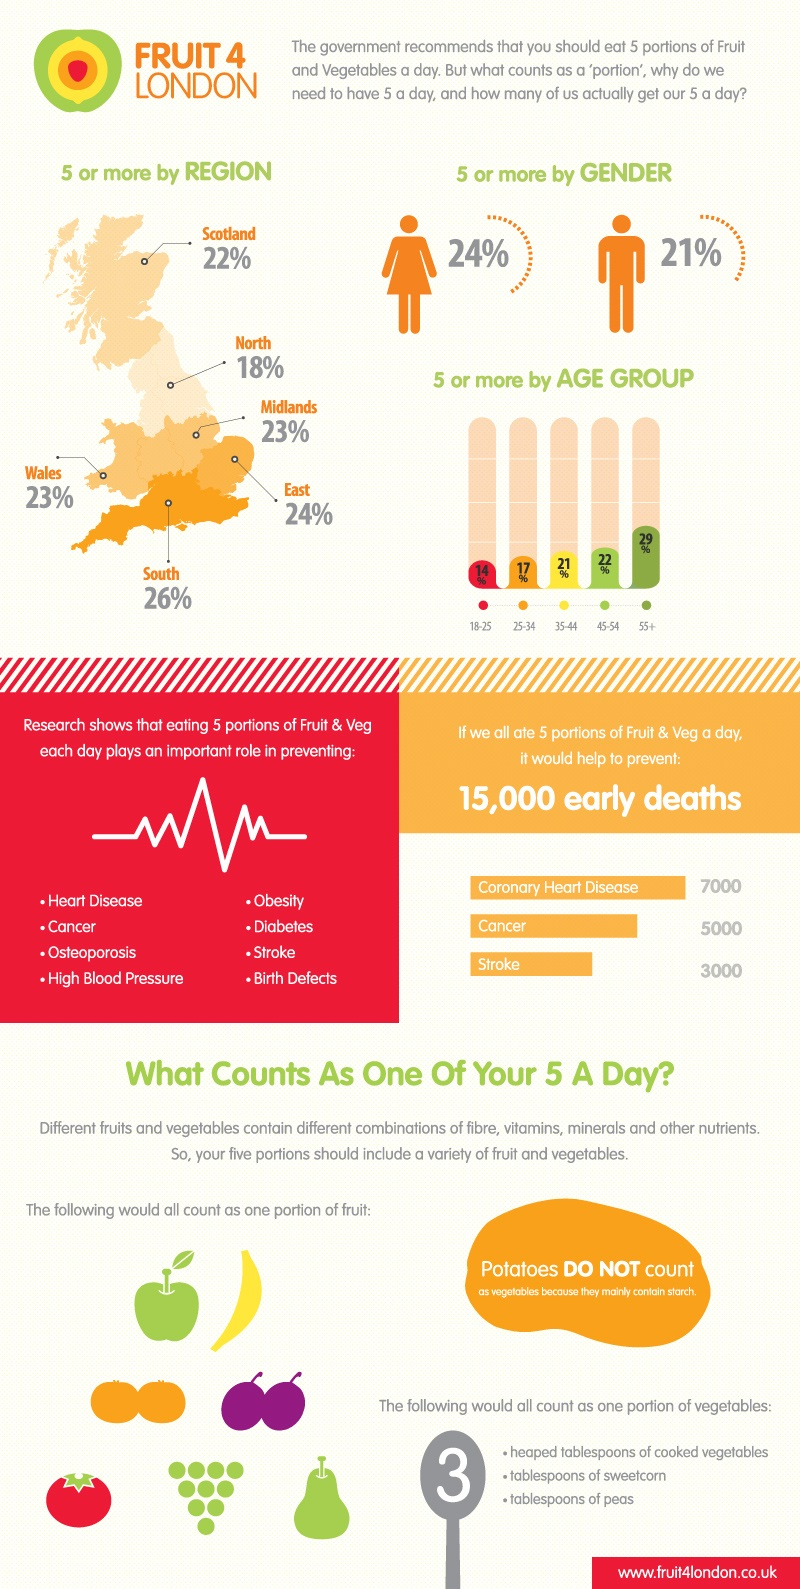 5-a-day-infographic-fruit4london jpg